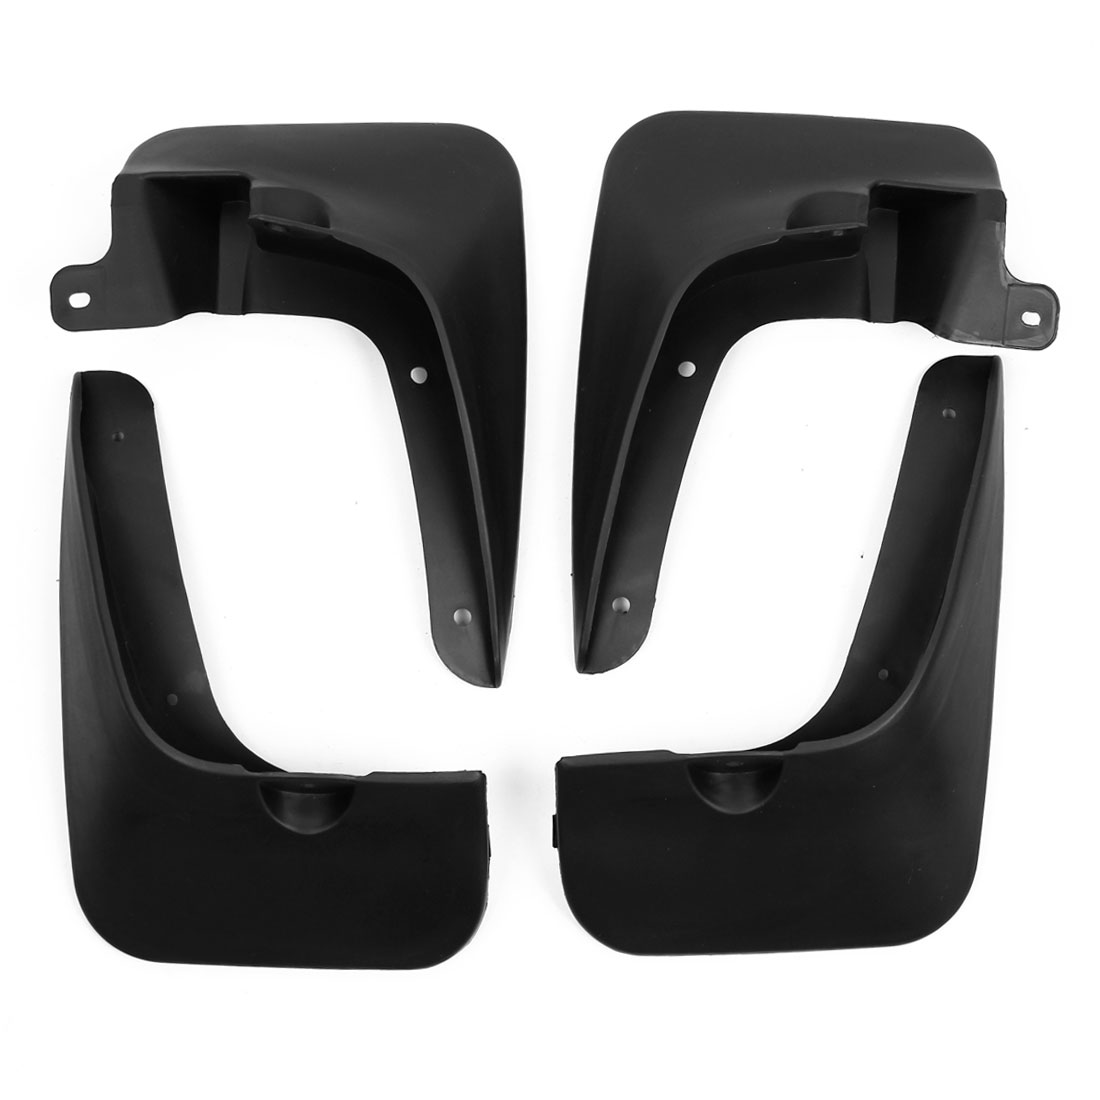 Car Shield Splash Guards Mud Flap Front Rear Set Assembly 4 in 1 for Toyota Rio